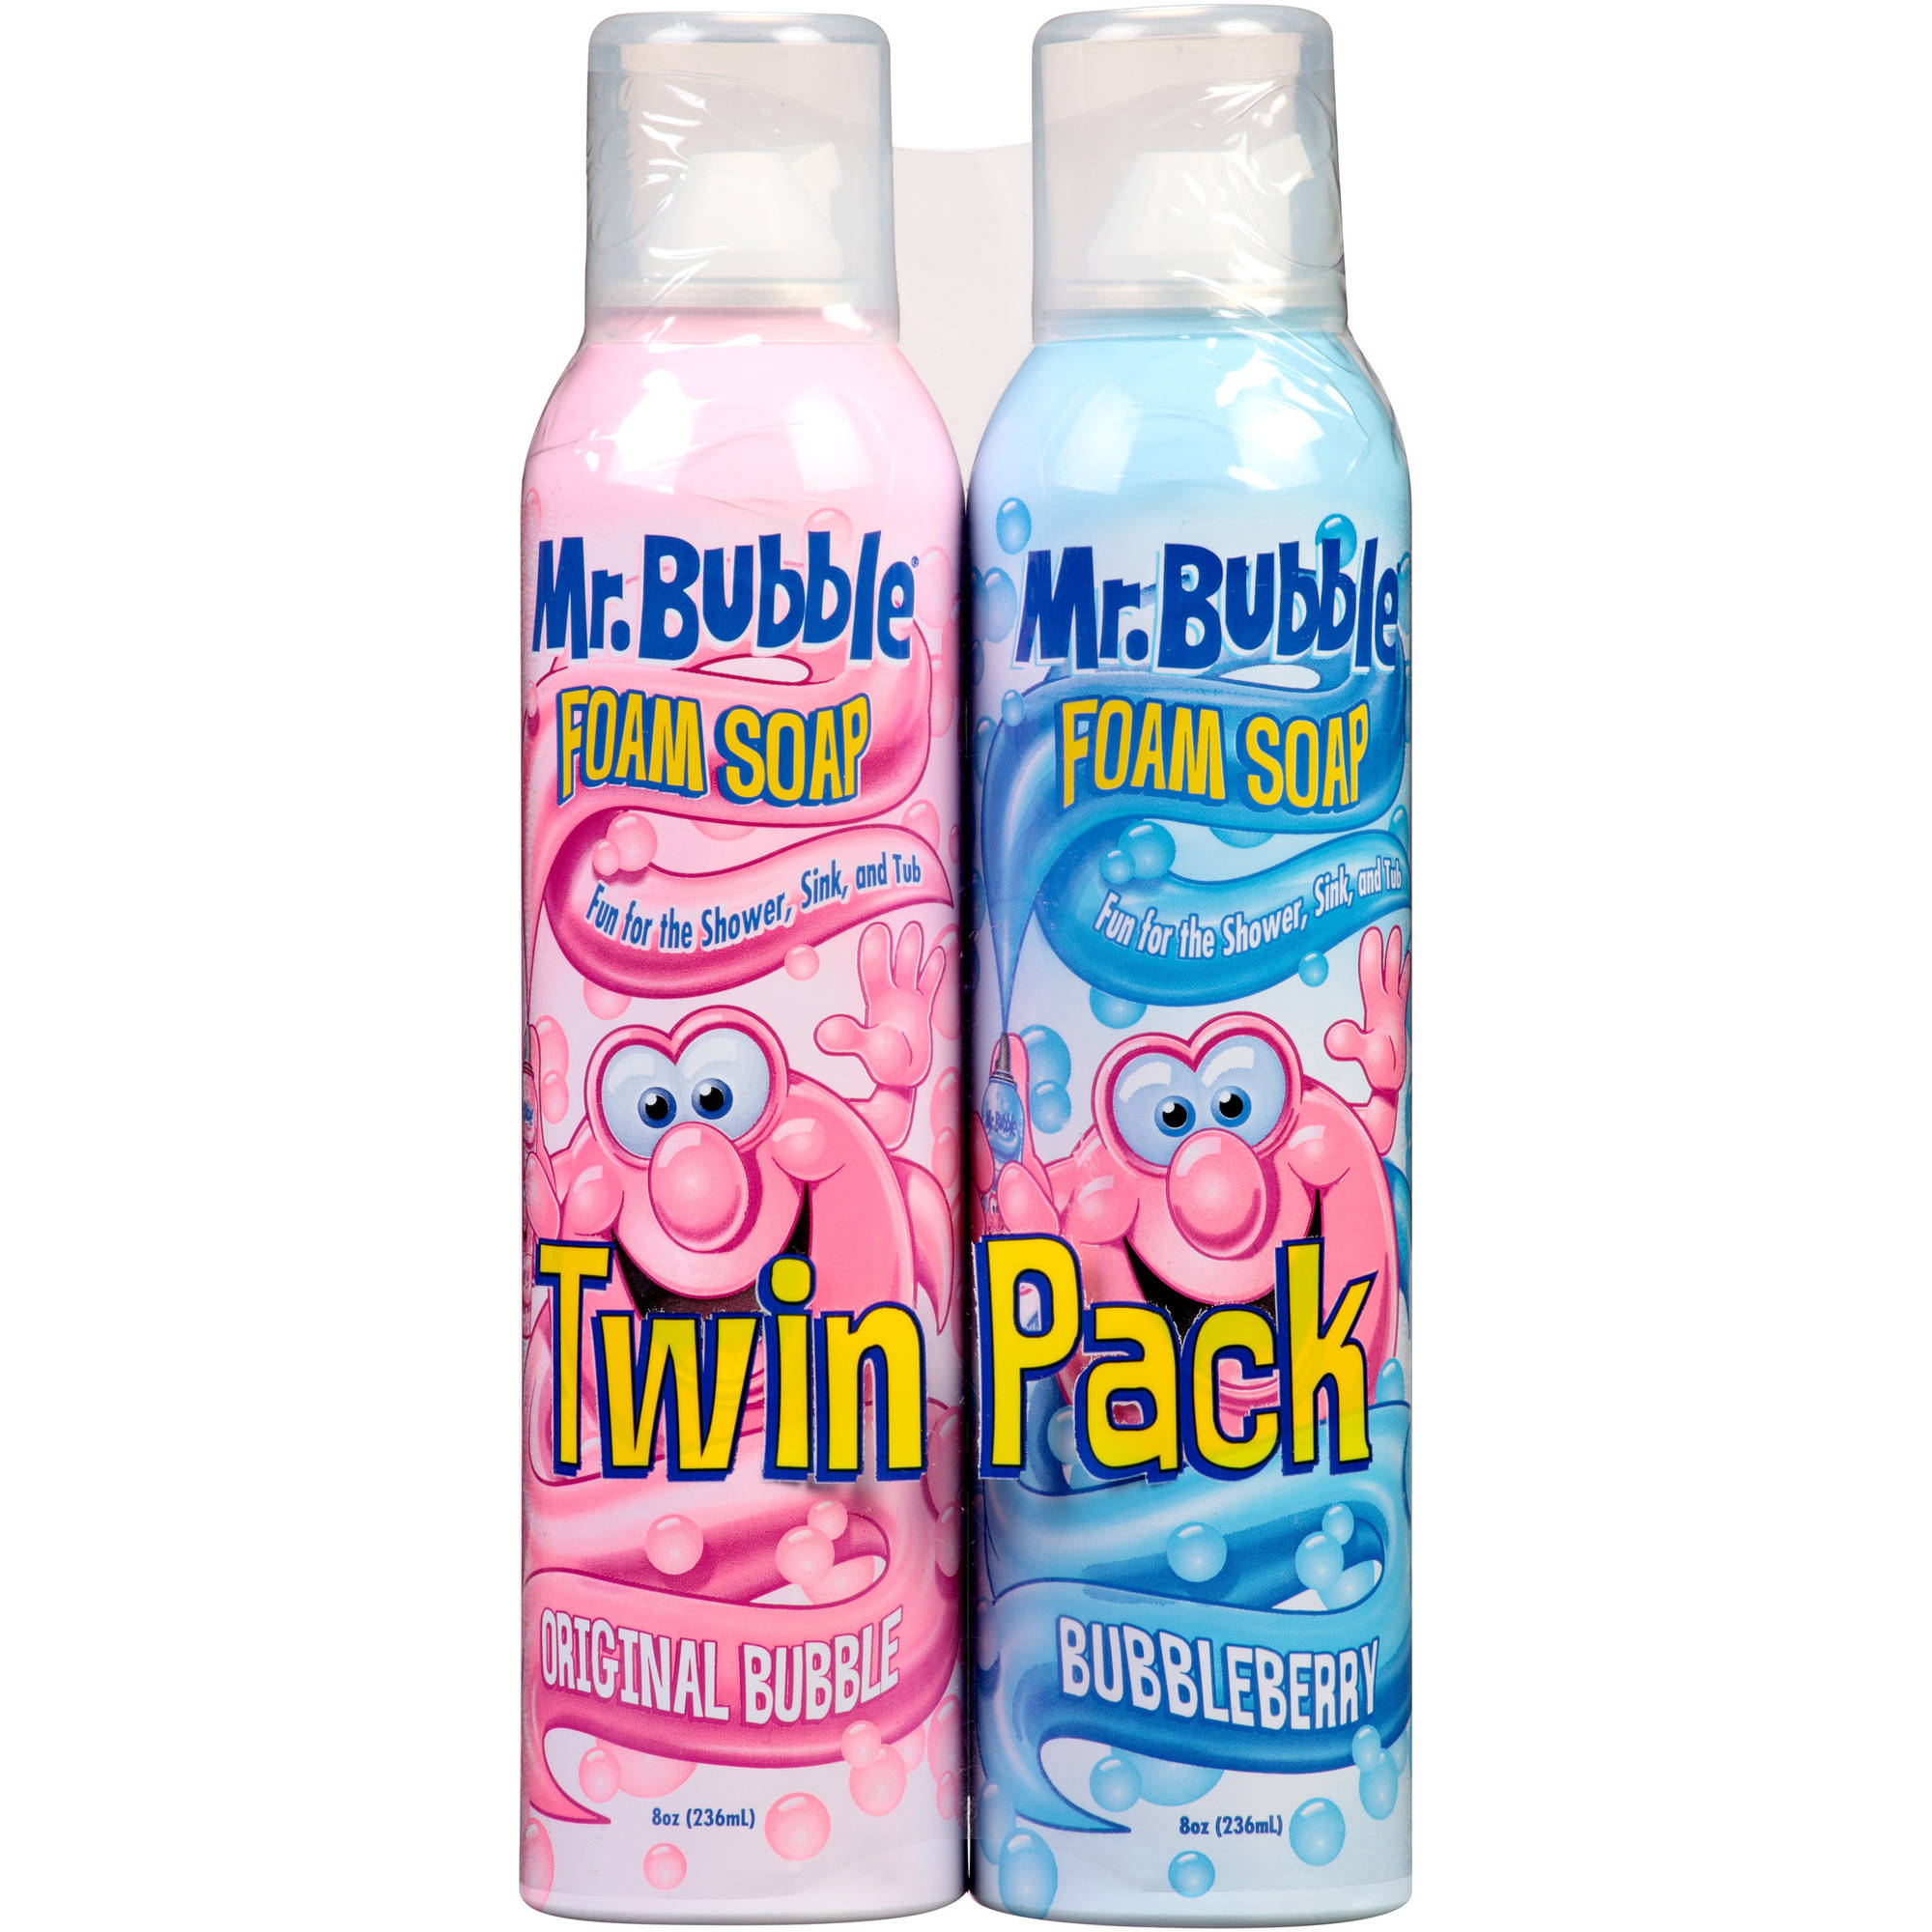 Mr. Bubble Original Bubble and Bubbleberry Foam Soap, 8 oz, 2 count